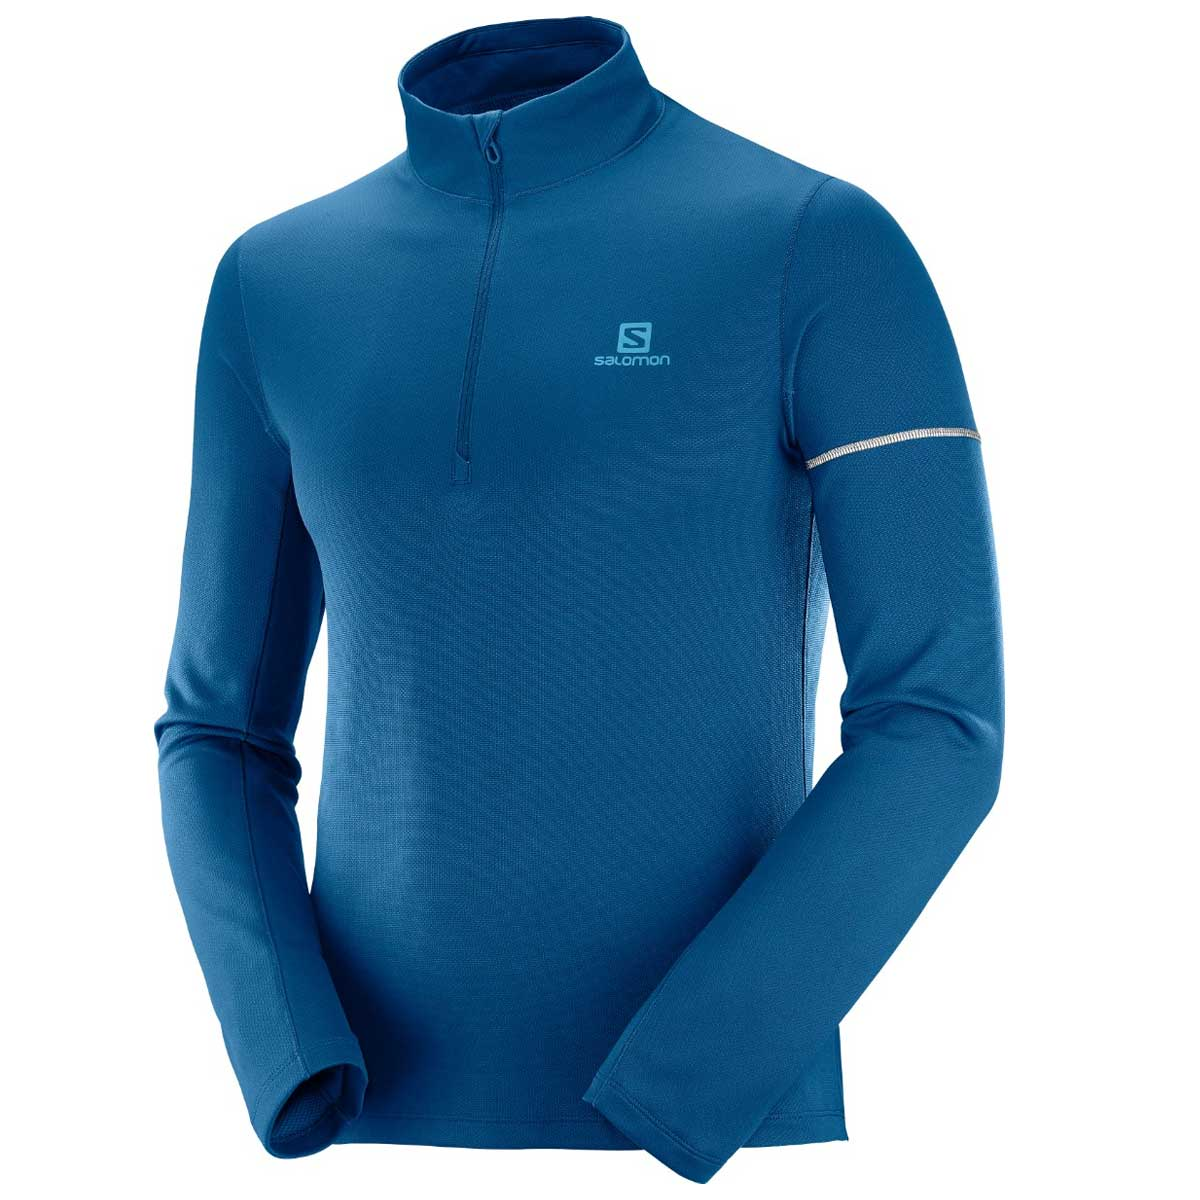 Salomon Men's Agile 1/2 Zip Midlayer Top in Poseidon and Lyons Blue